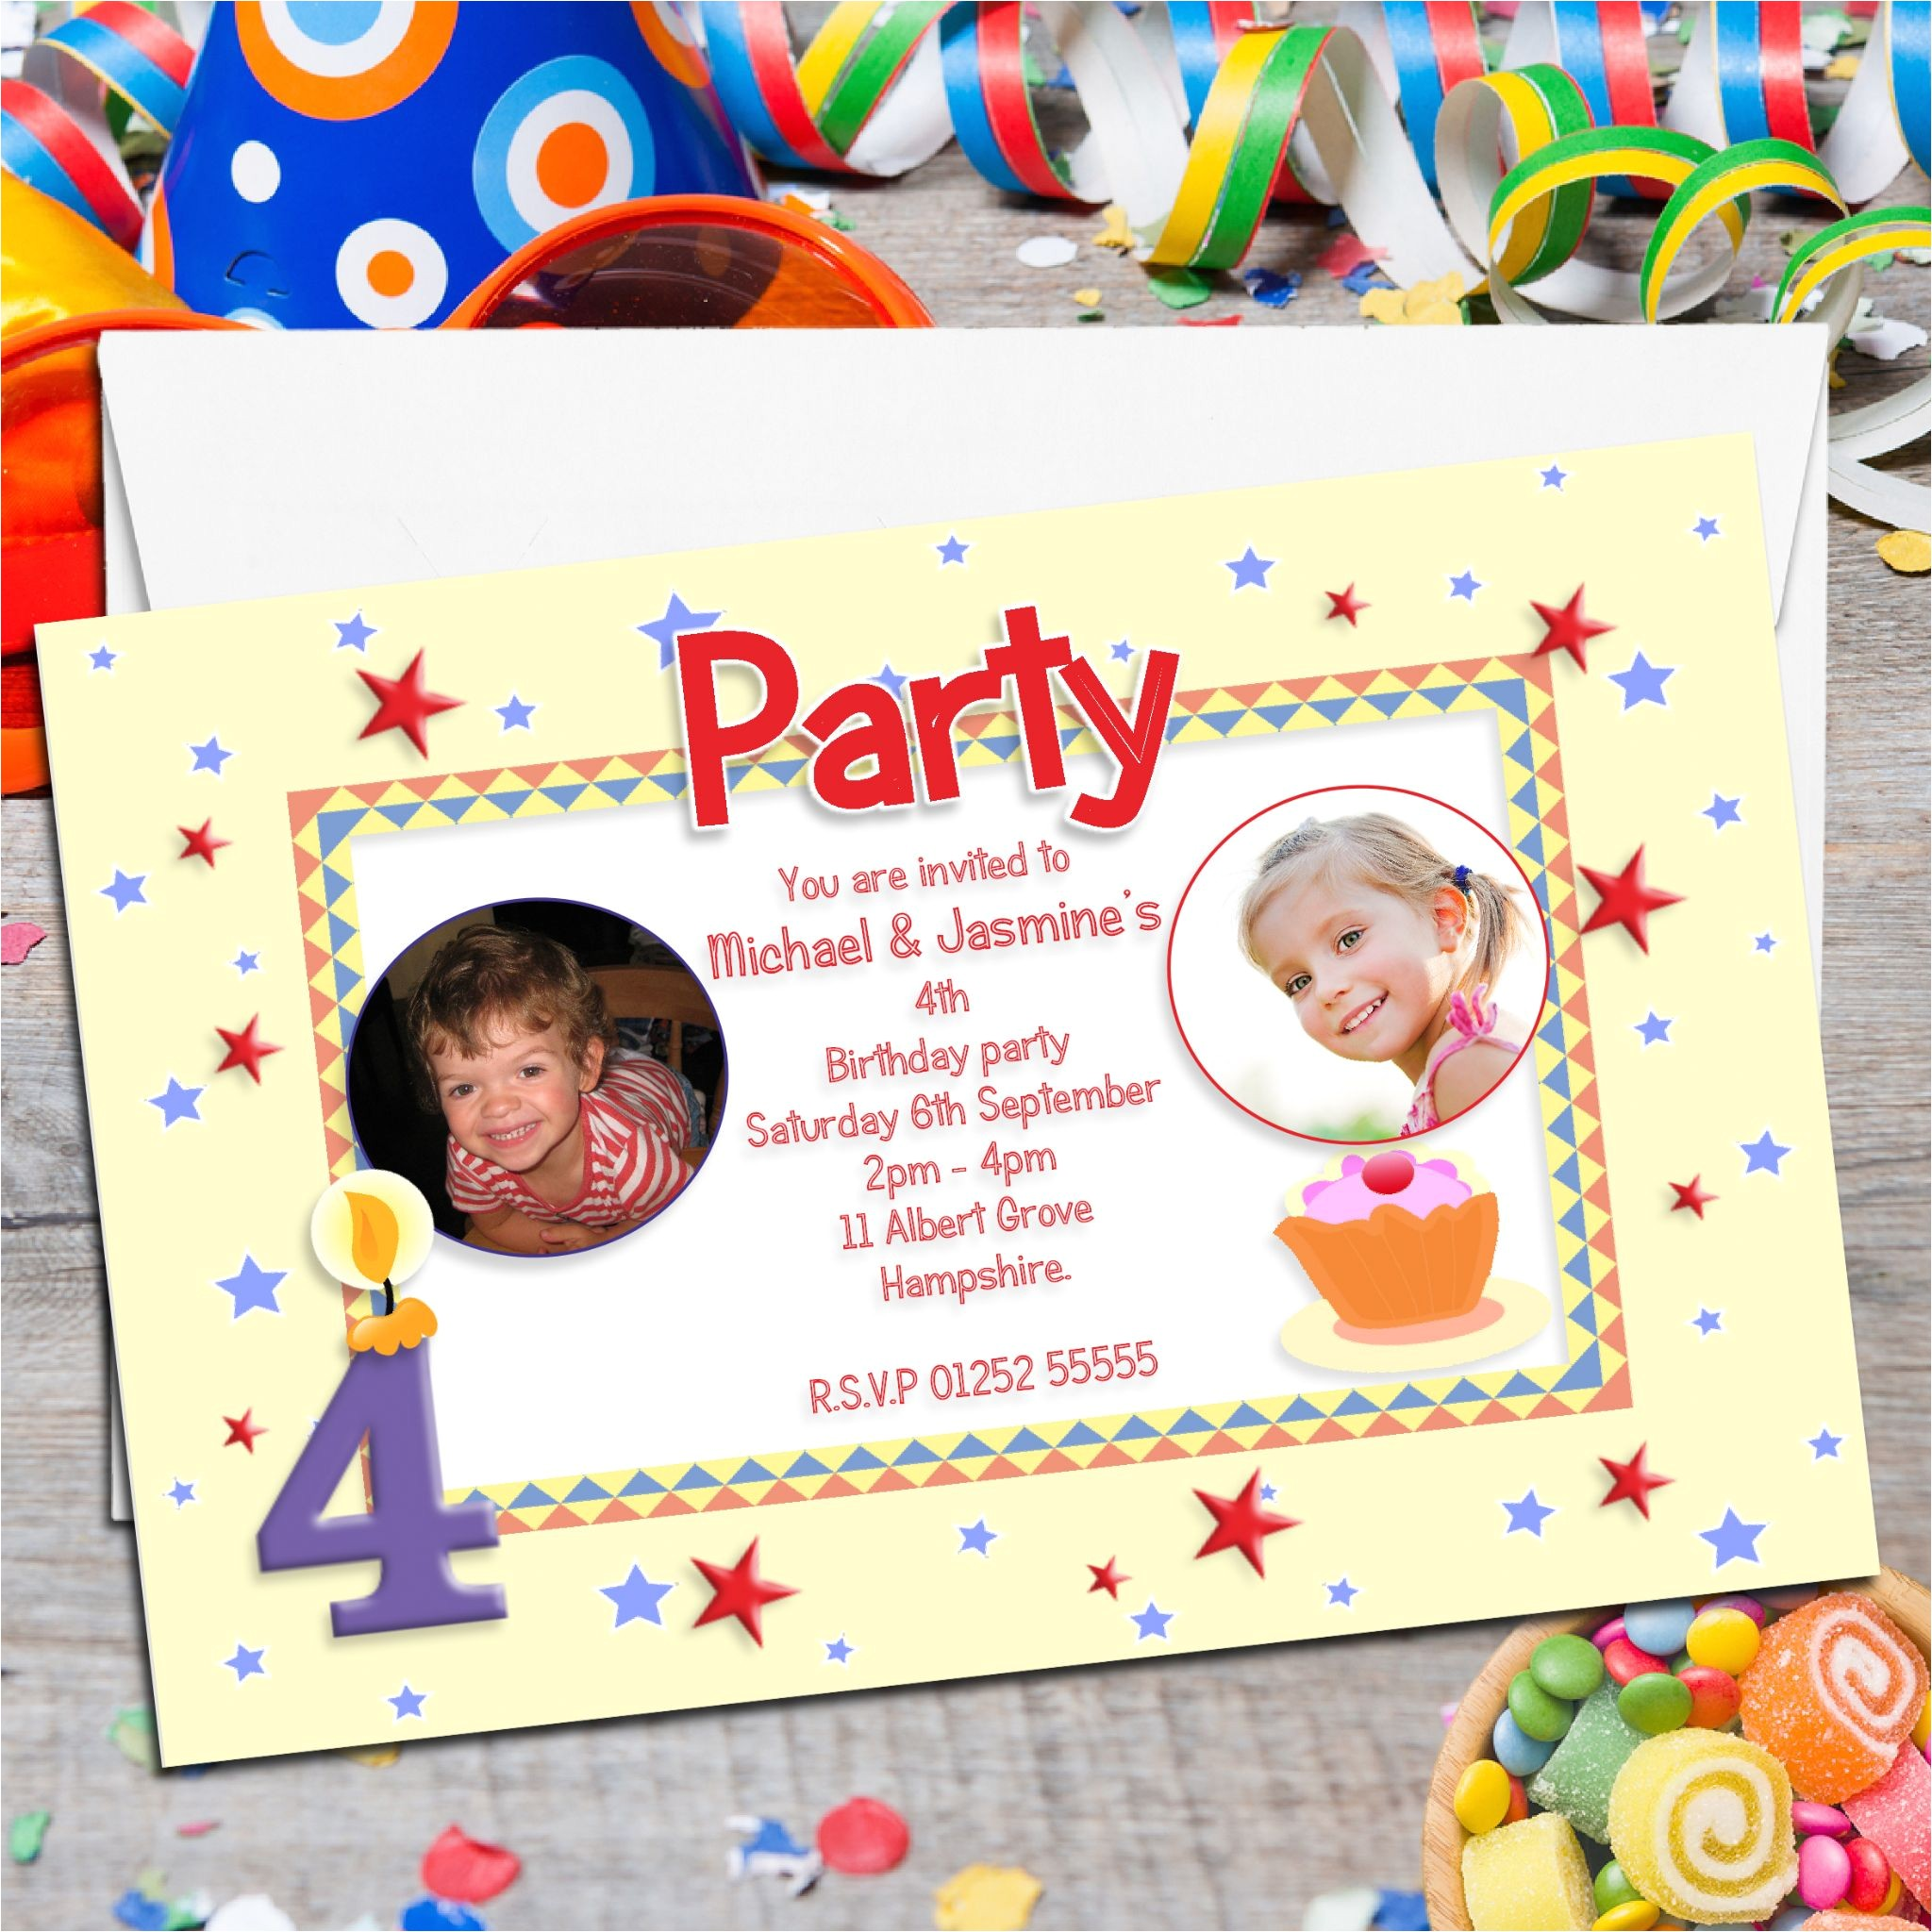 10 personalised twins joint birthday party photo invitations n6 607 p